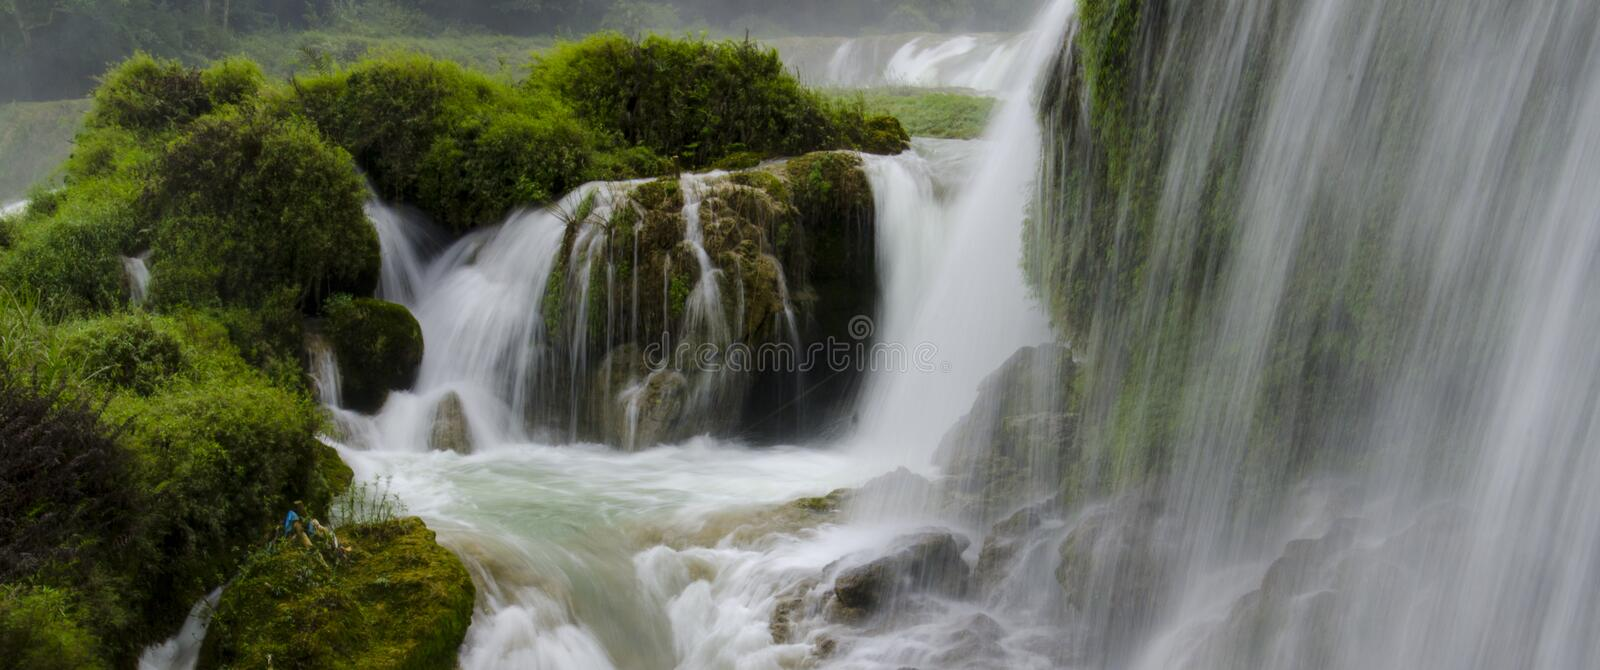 Detian waterfall stock images